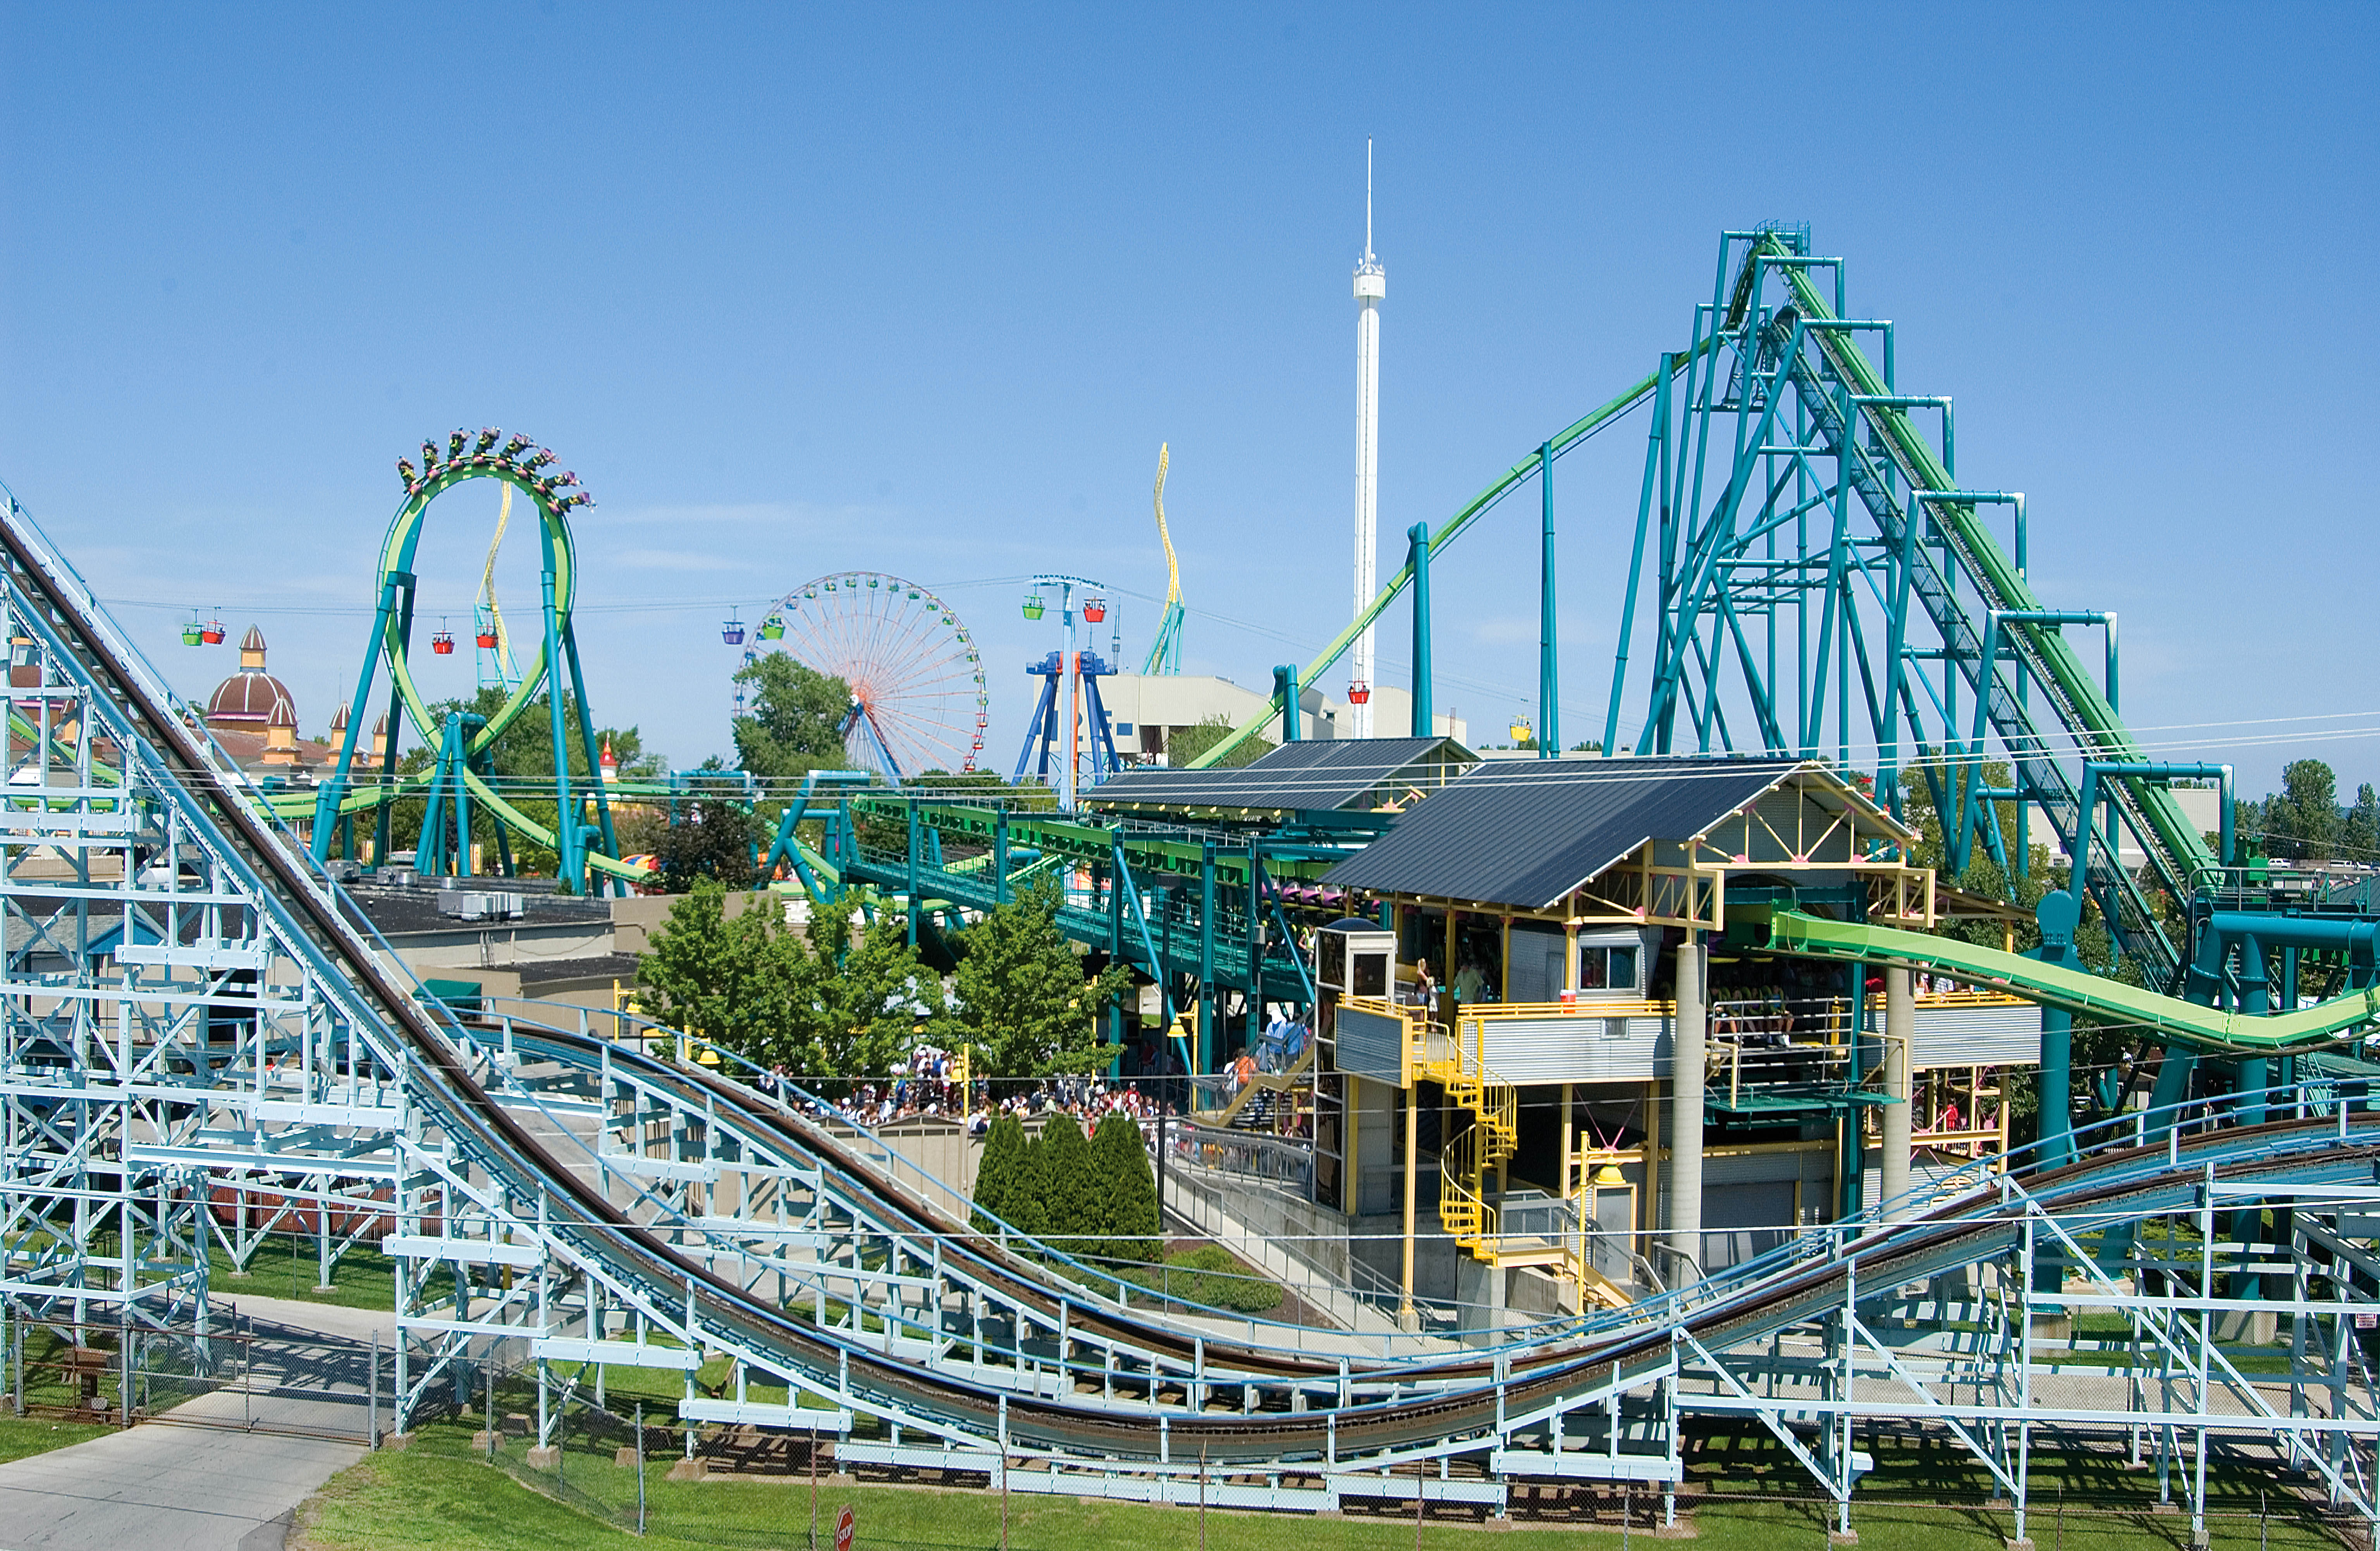 Purchase Tickets Online And Save Money Cedar Point Offers A Variety Of S Throughout The Season On Their Website Click Here For Cur Promotions